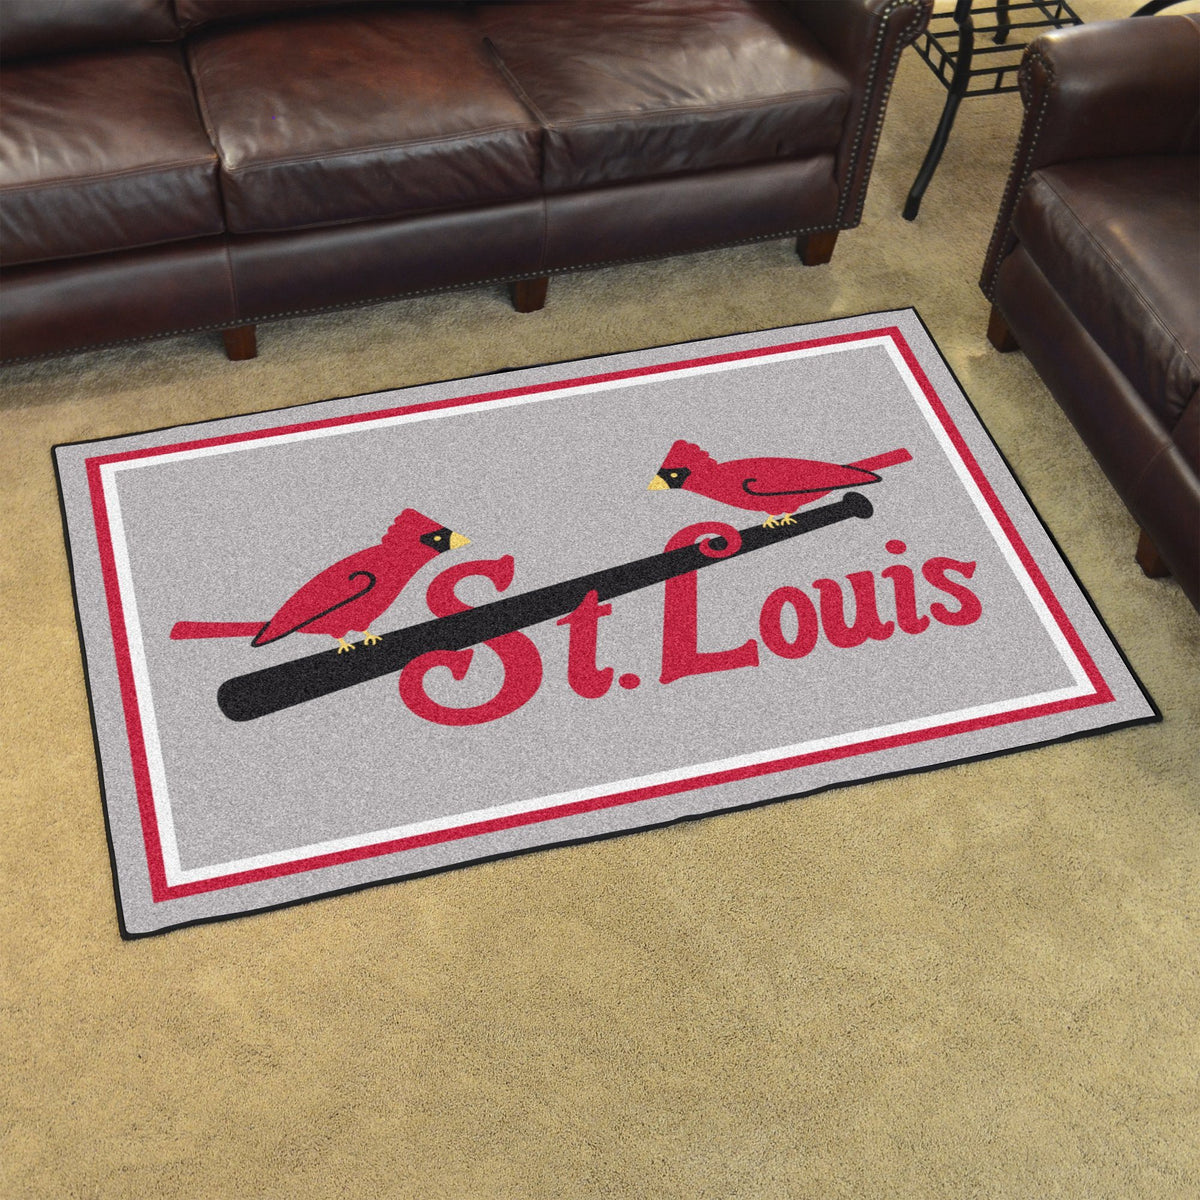 MLB Retro - 4' x 6' Rug MLB Retro Mats, Plush Rugs, 4x6 Rug, MLB, Home Fan Mats St. Louis Cardinals